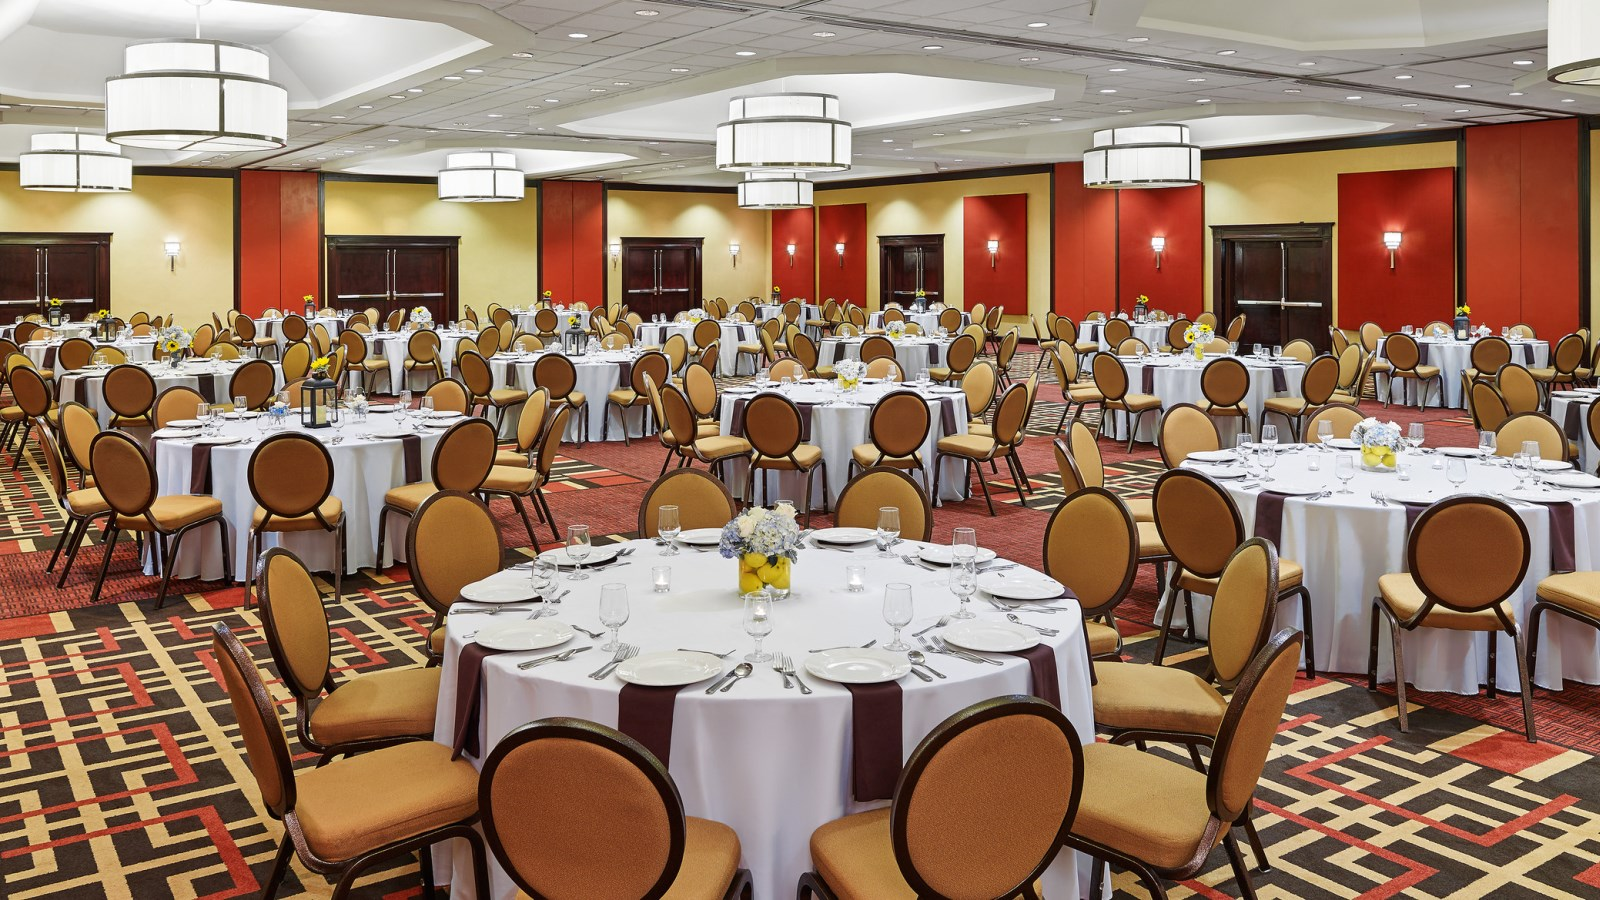 Sheraton Roanoke Hotel & Conference Center - Large Meetings